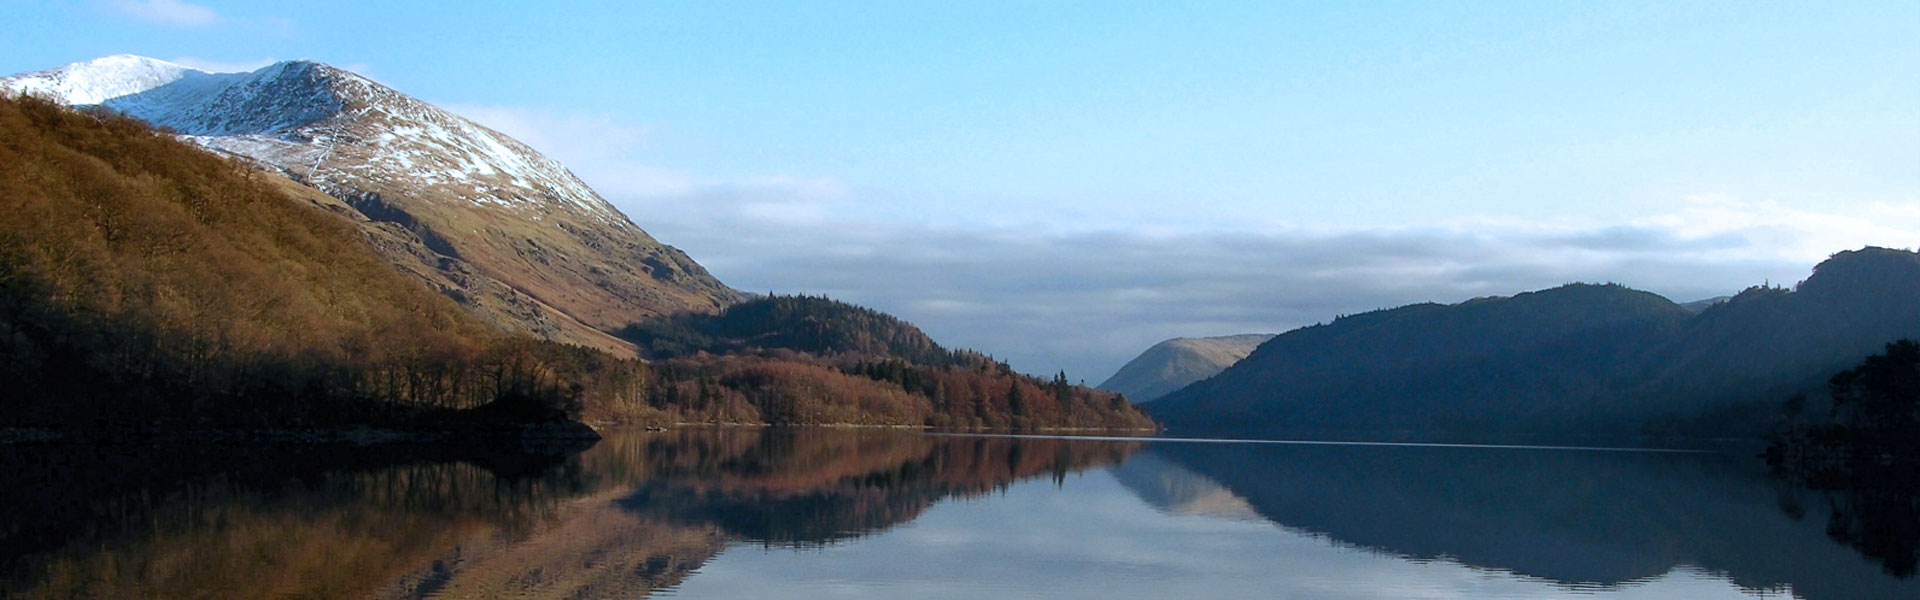 Self Catering Cottages in the Lake District